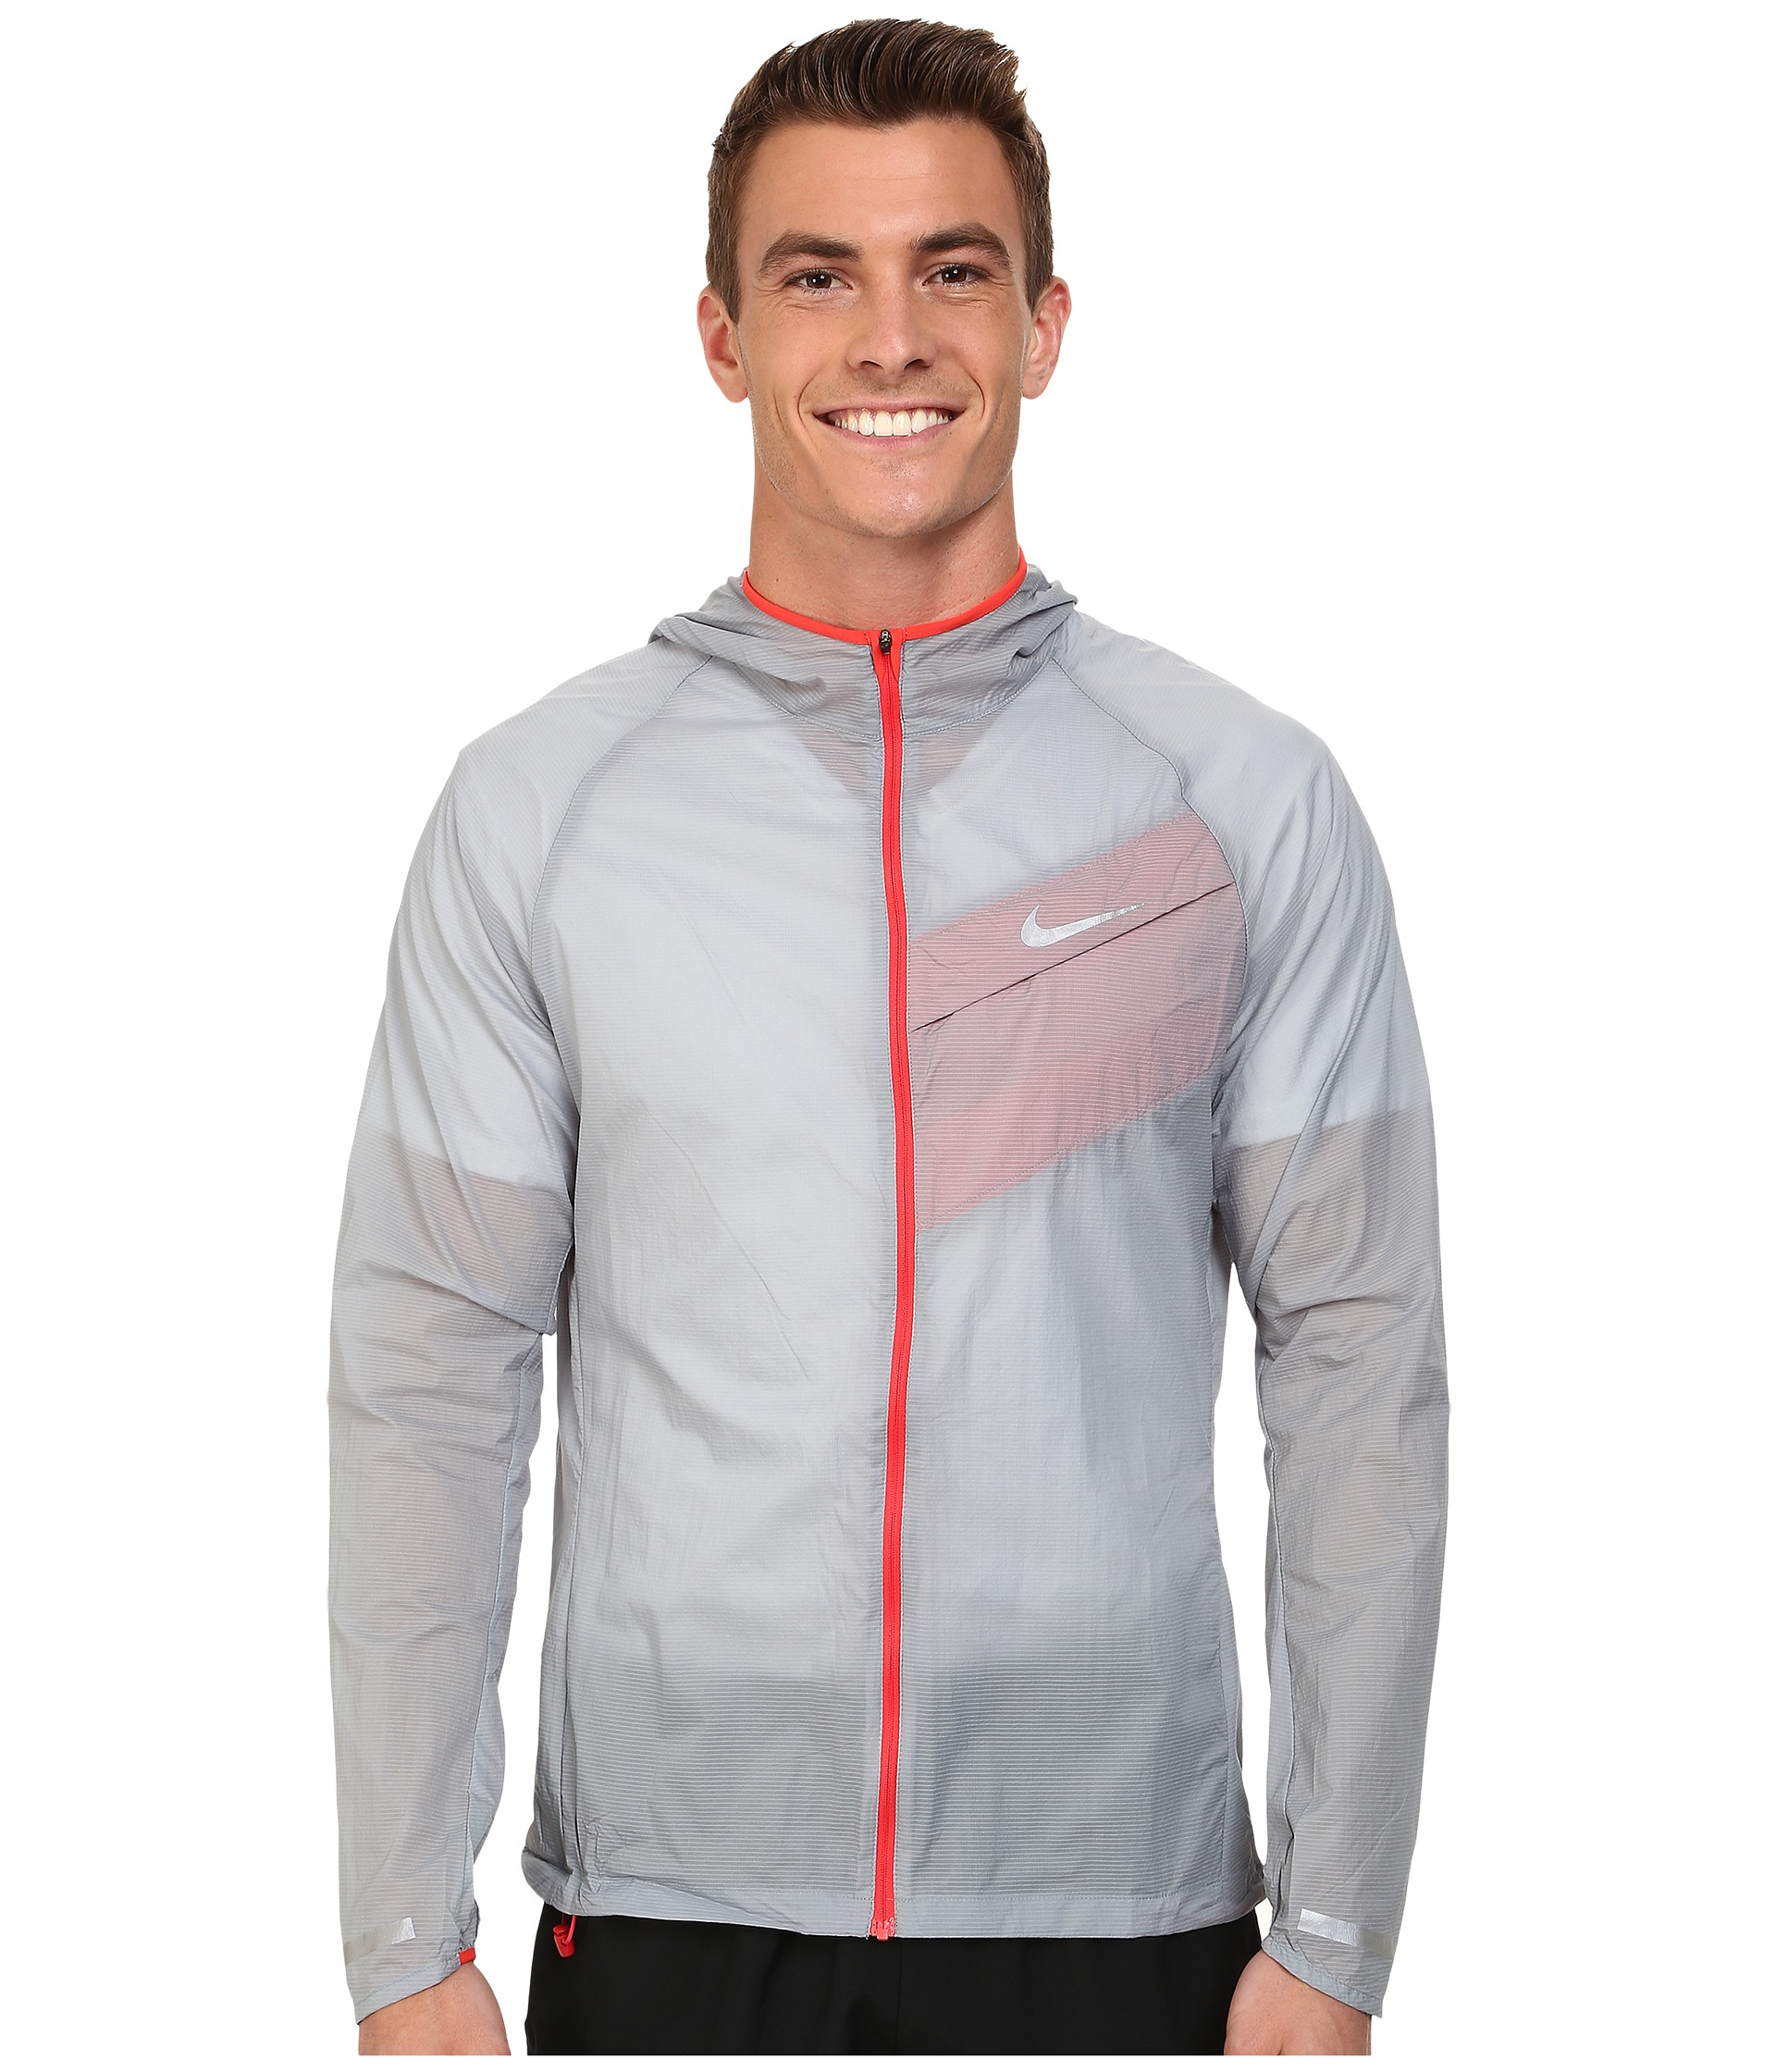 55ae9d5a933f Lyst - Nike Impossibly Light Jacket in Gray for Men